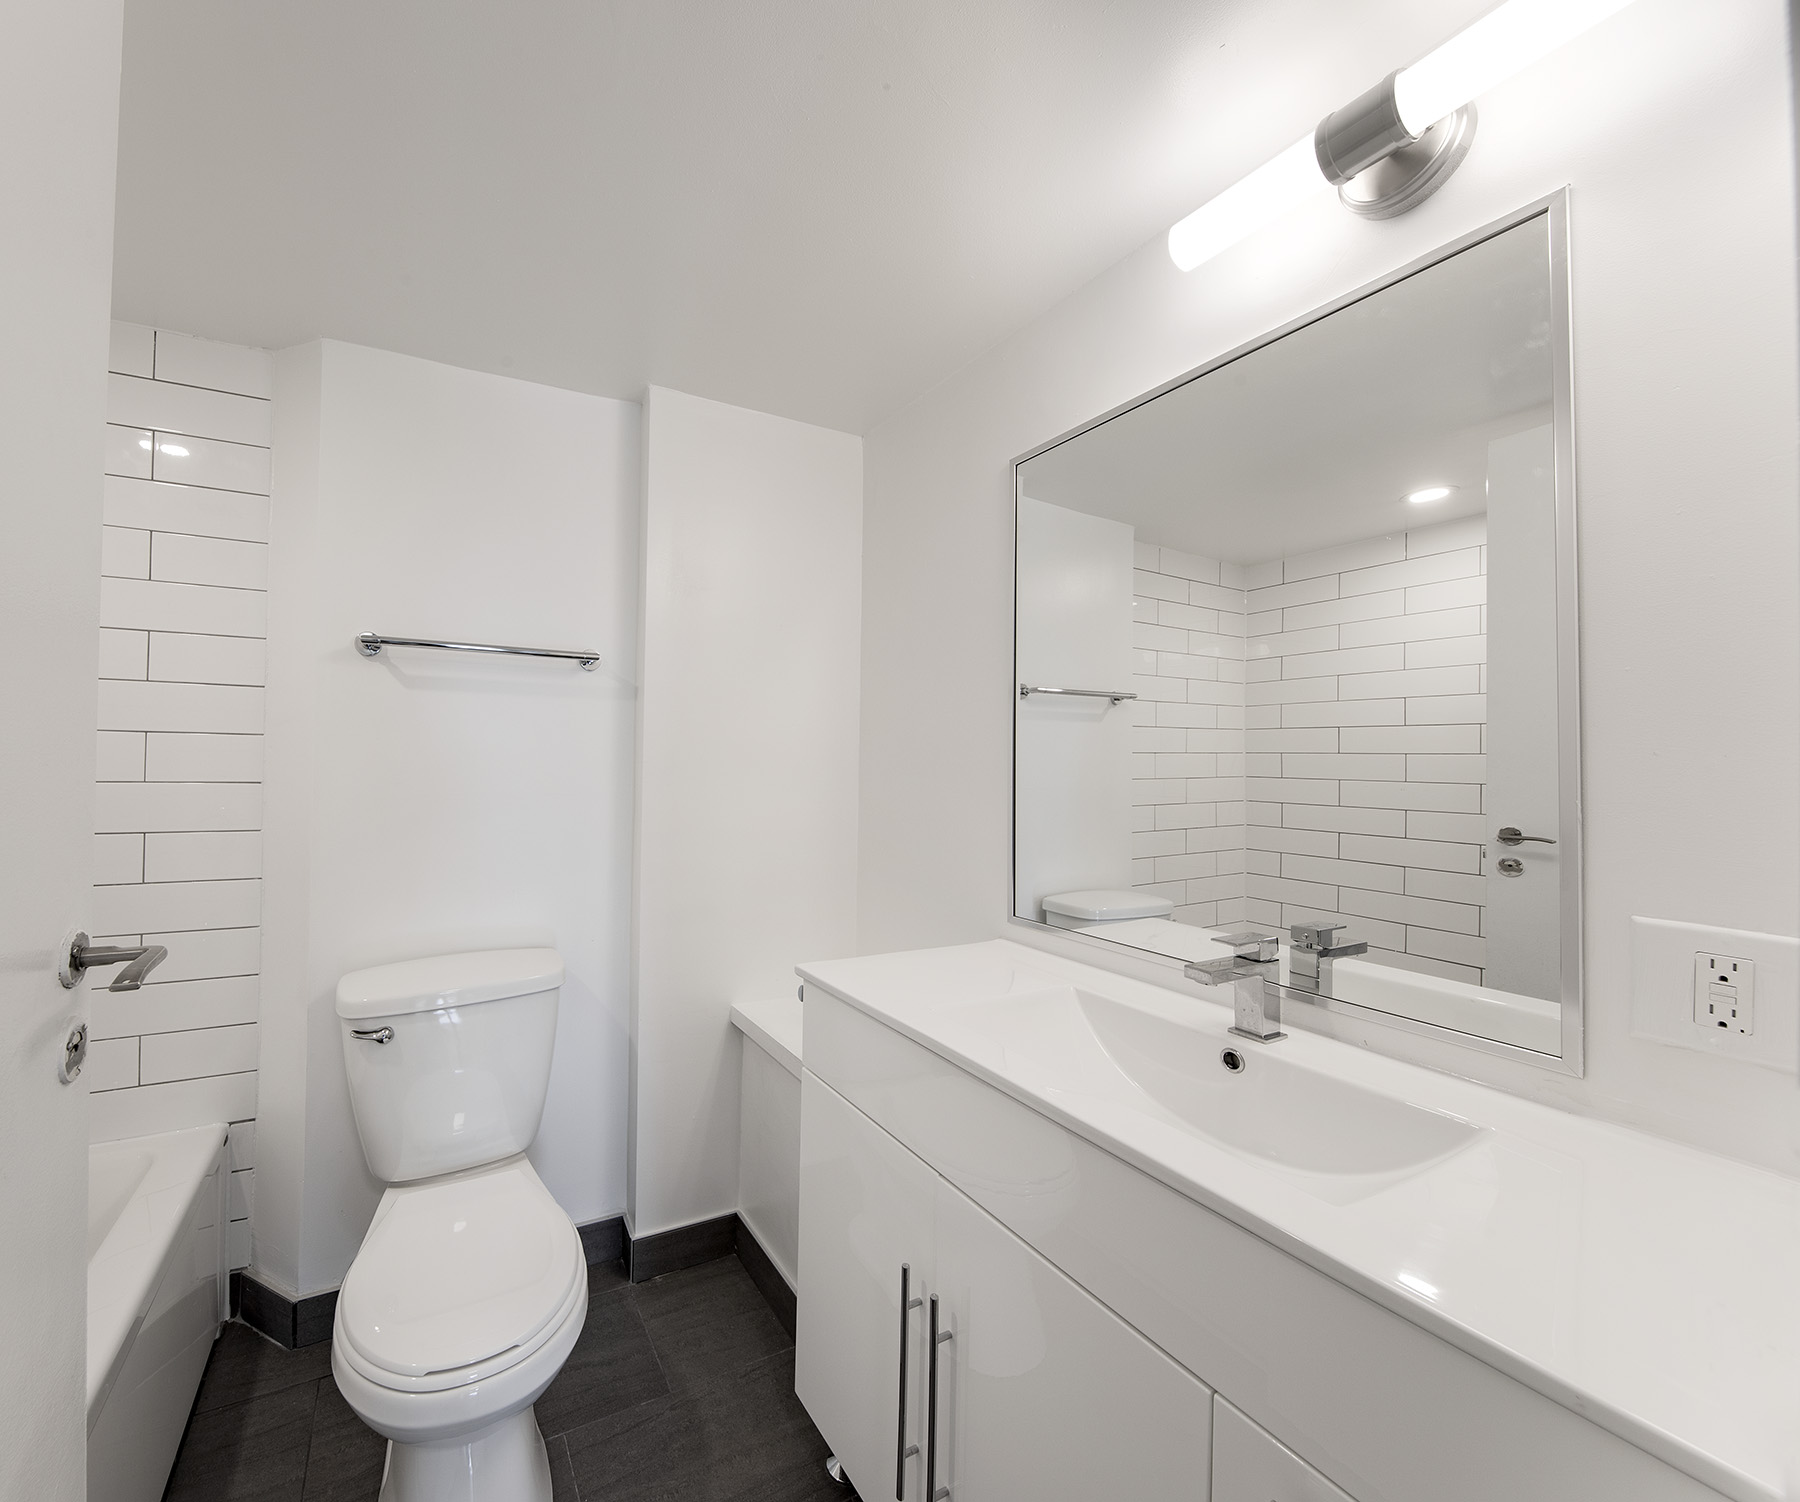 2 bedroom Apartments for rent in Cote-St-Luc at 5765 Cote St-Luc - Photo 06 - RentQuebecApartments – L401533